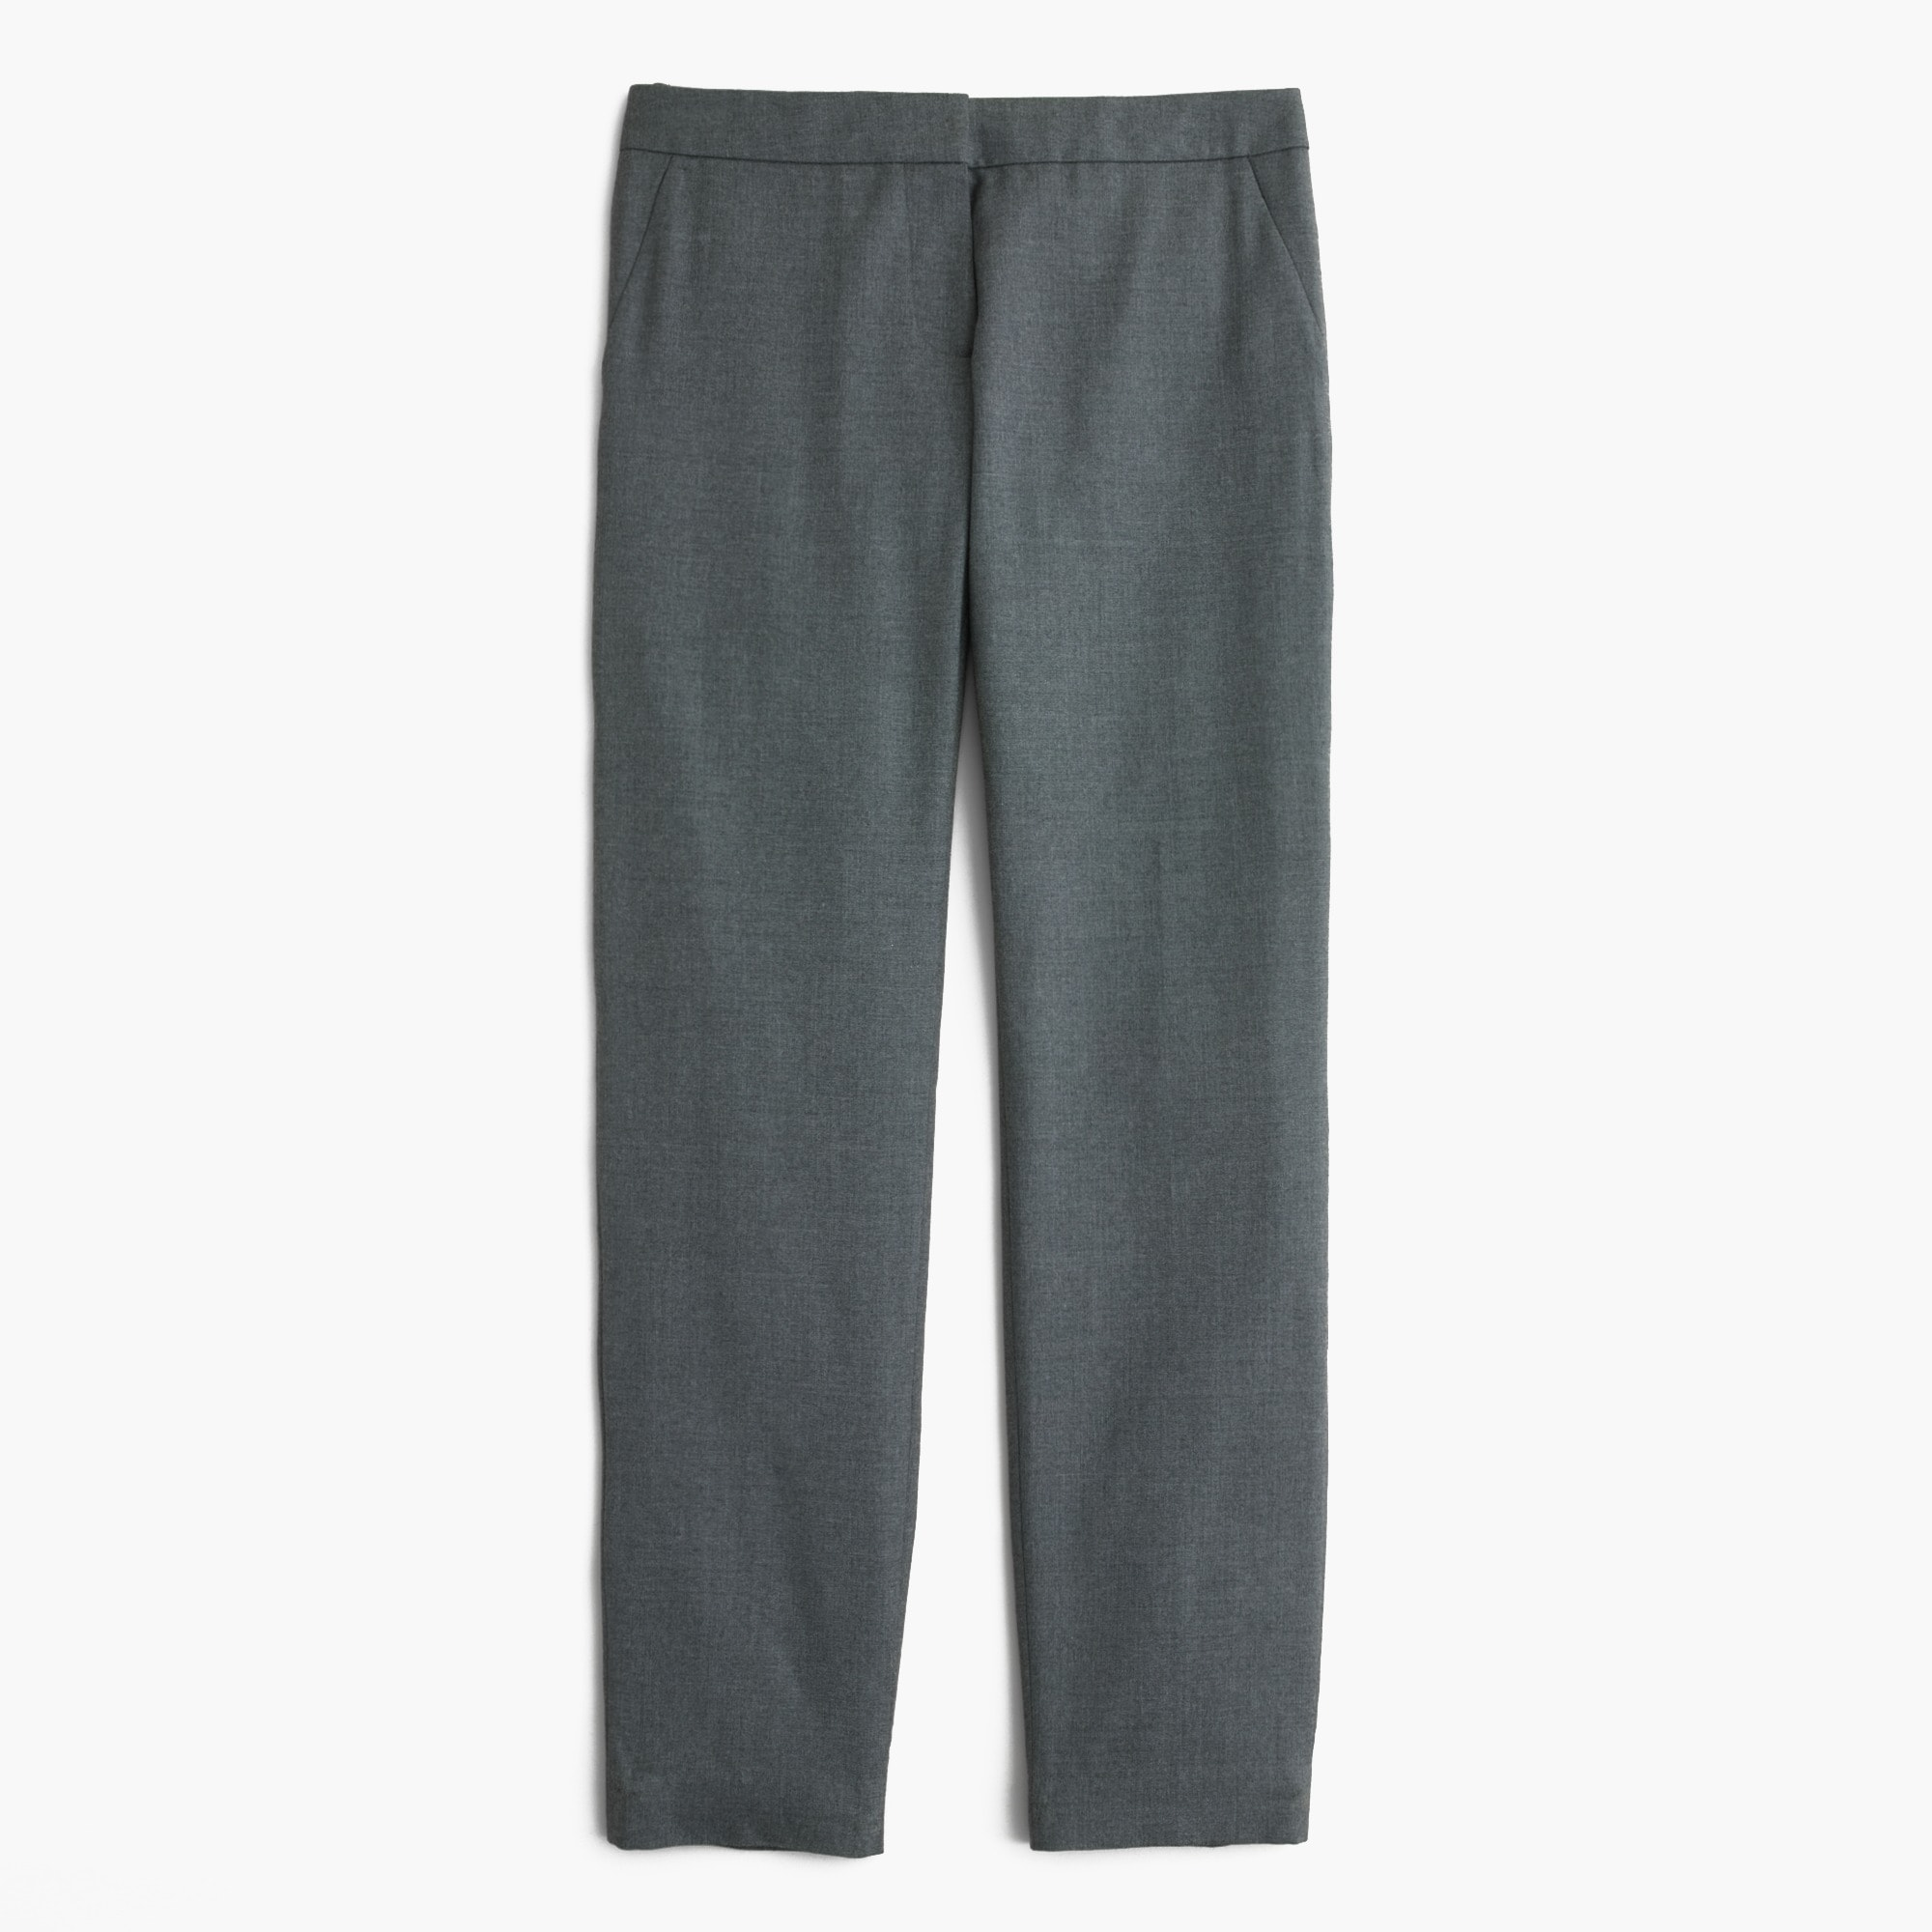 Image 2 for Tall Paley pant in Super 120s wool